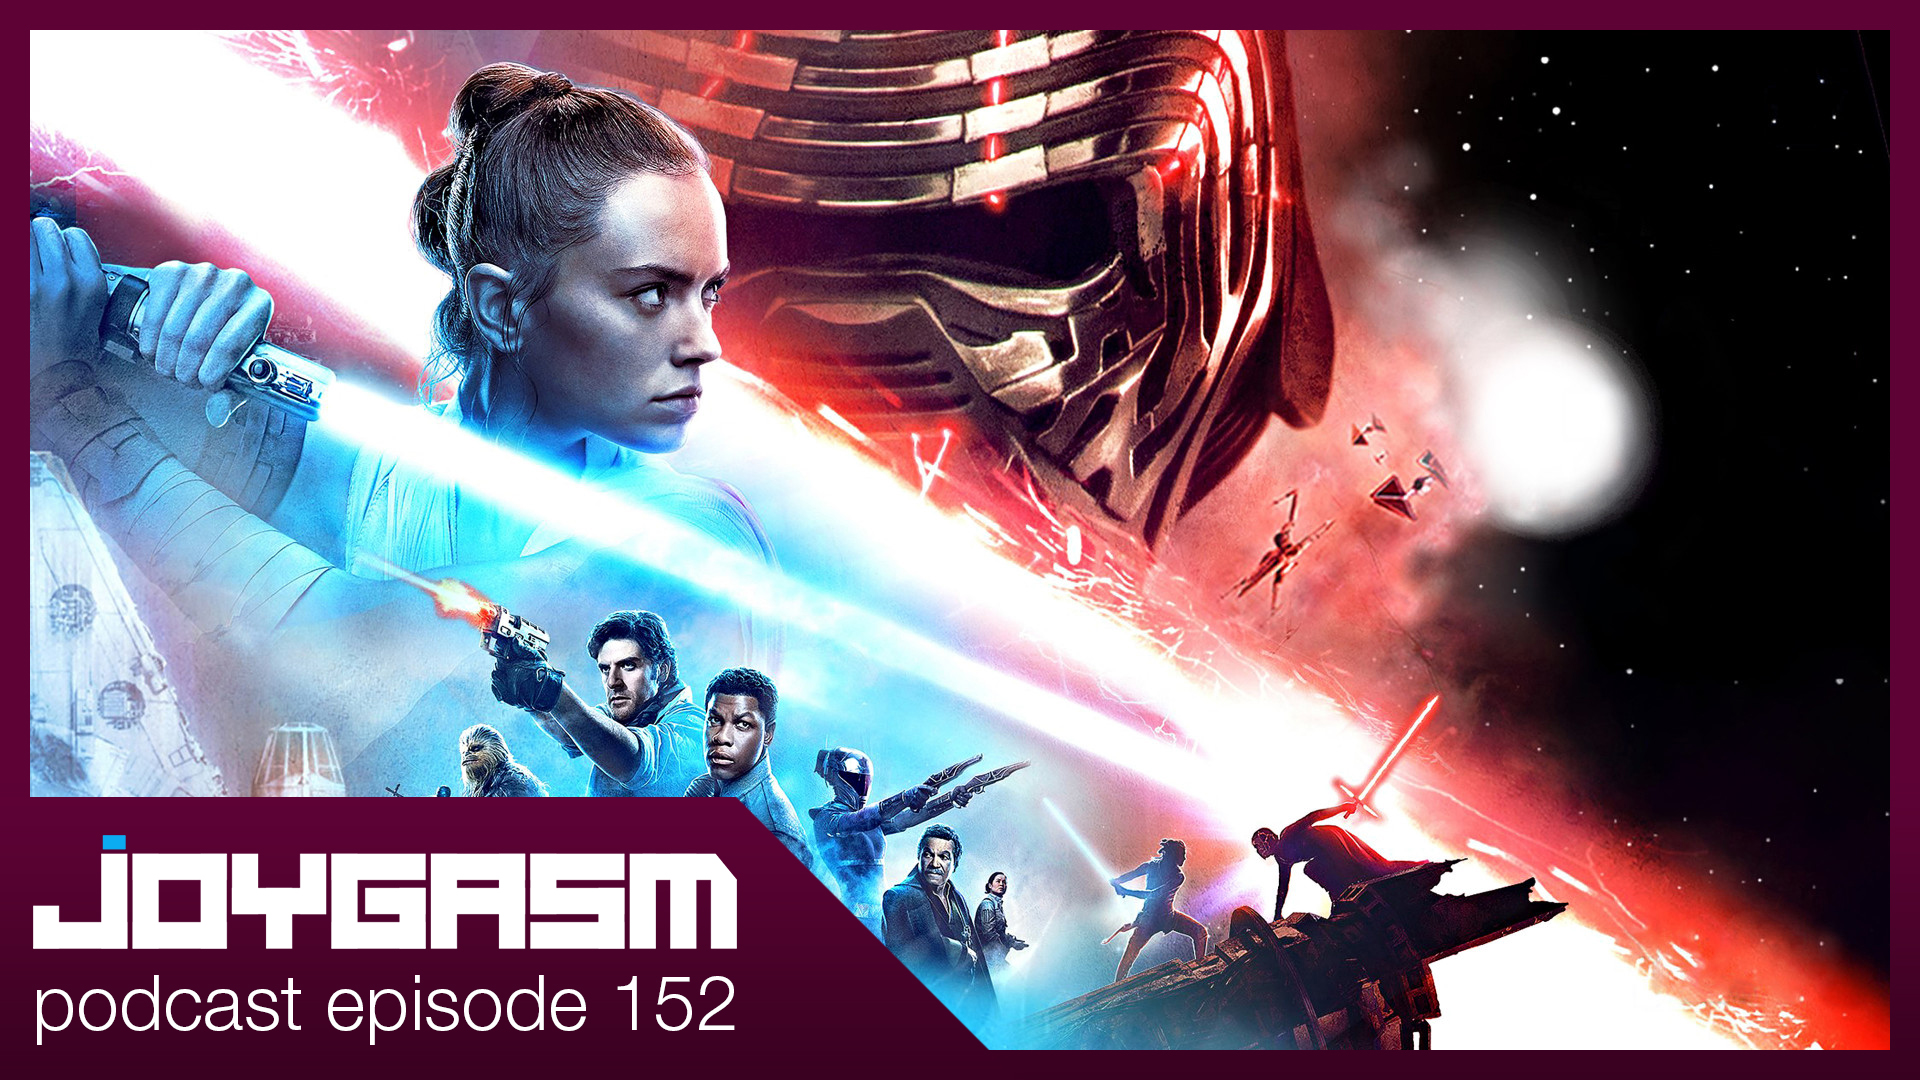 Ep. 152: Star Wars The Rise Of Skywalker Movie Review